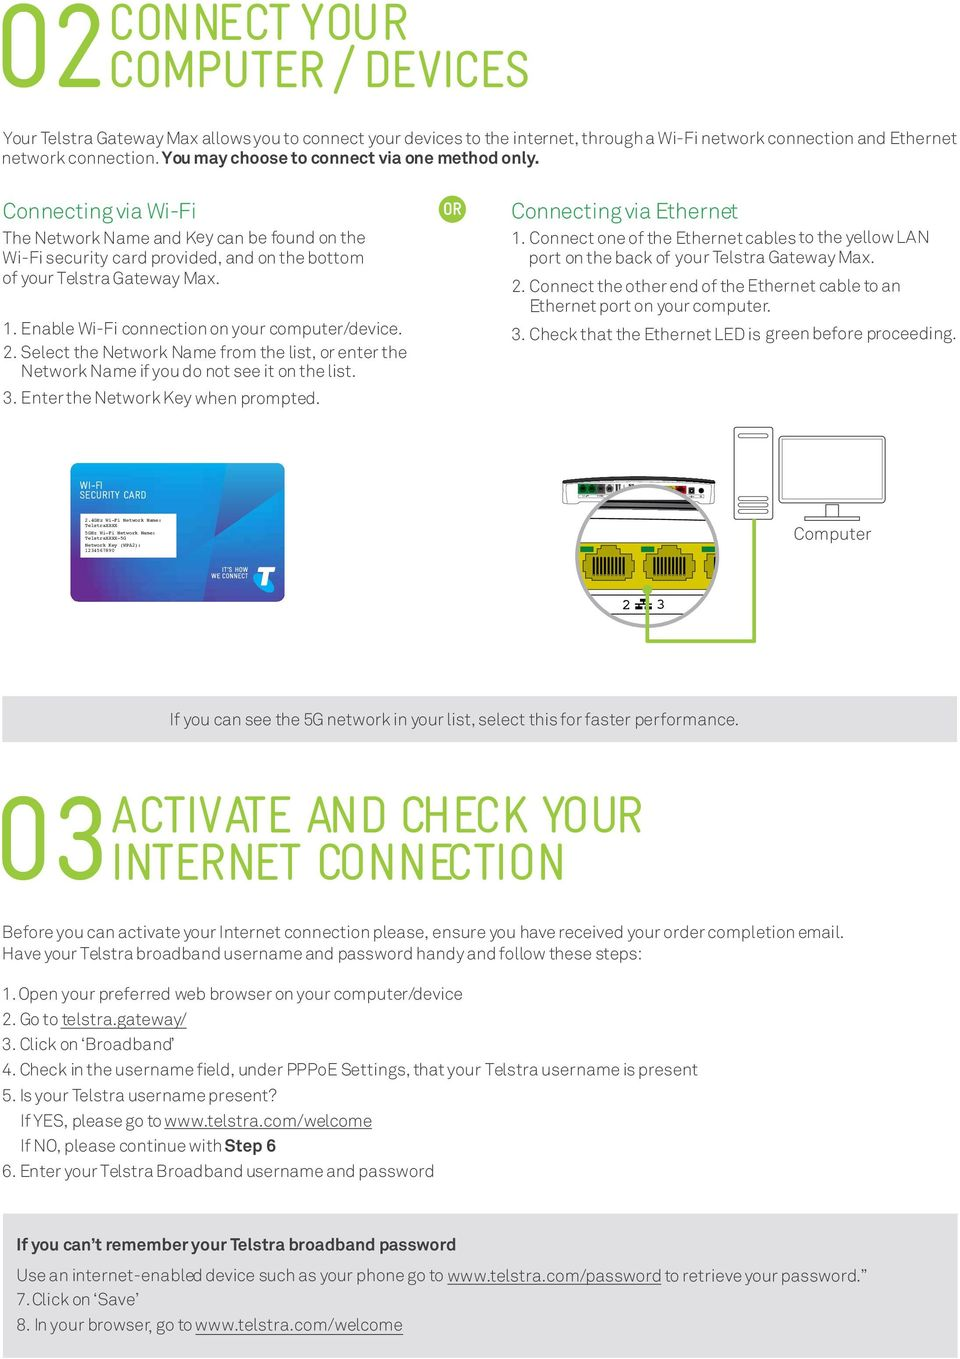 Get connected with your TELSTRA GATEWAY MAX  Quick start